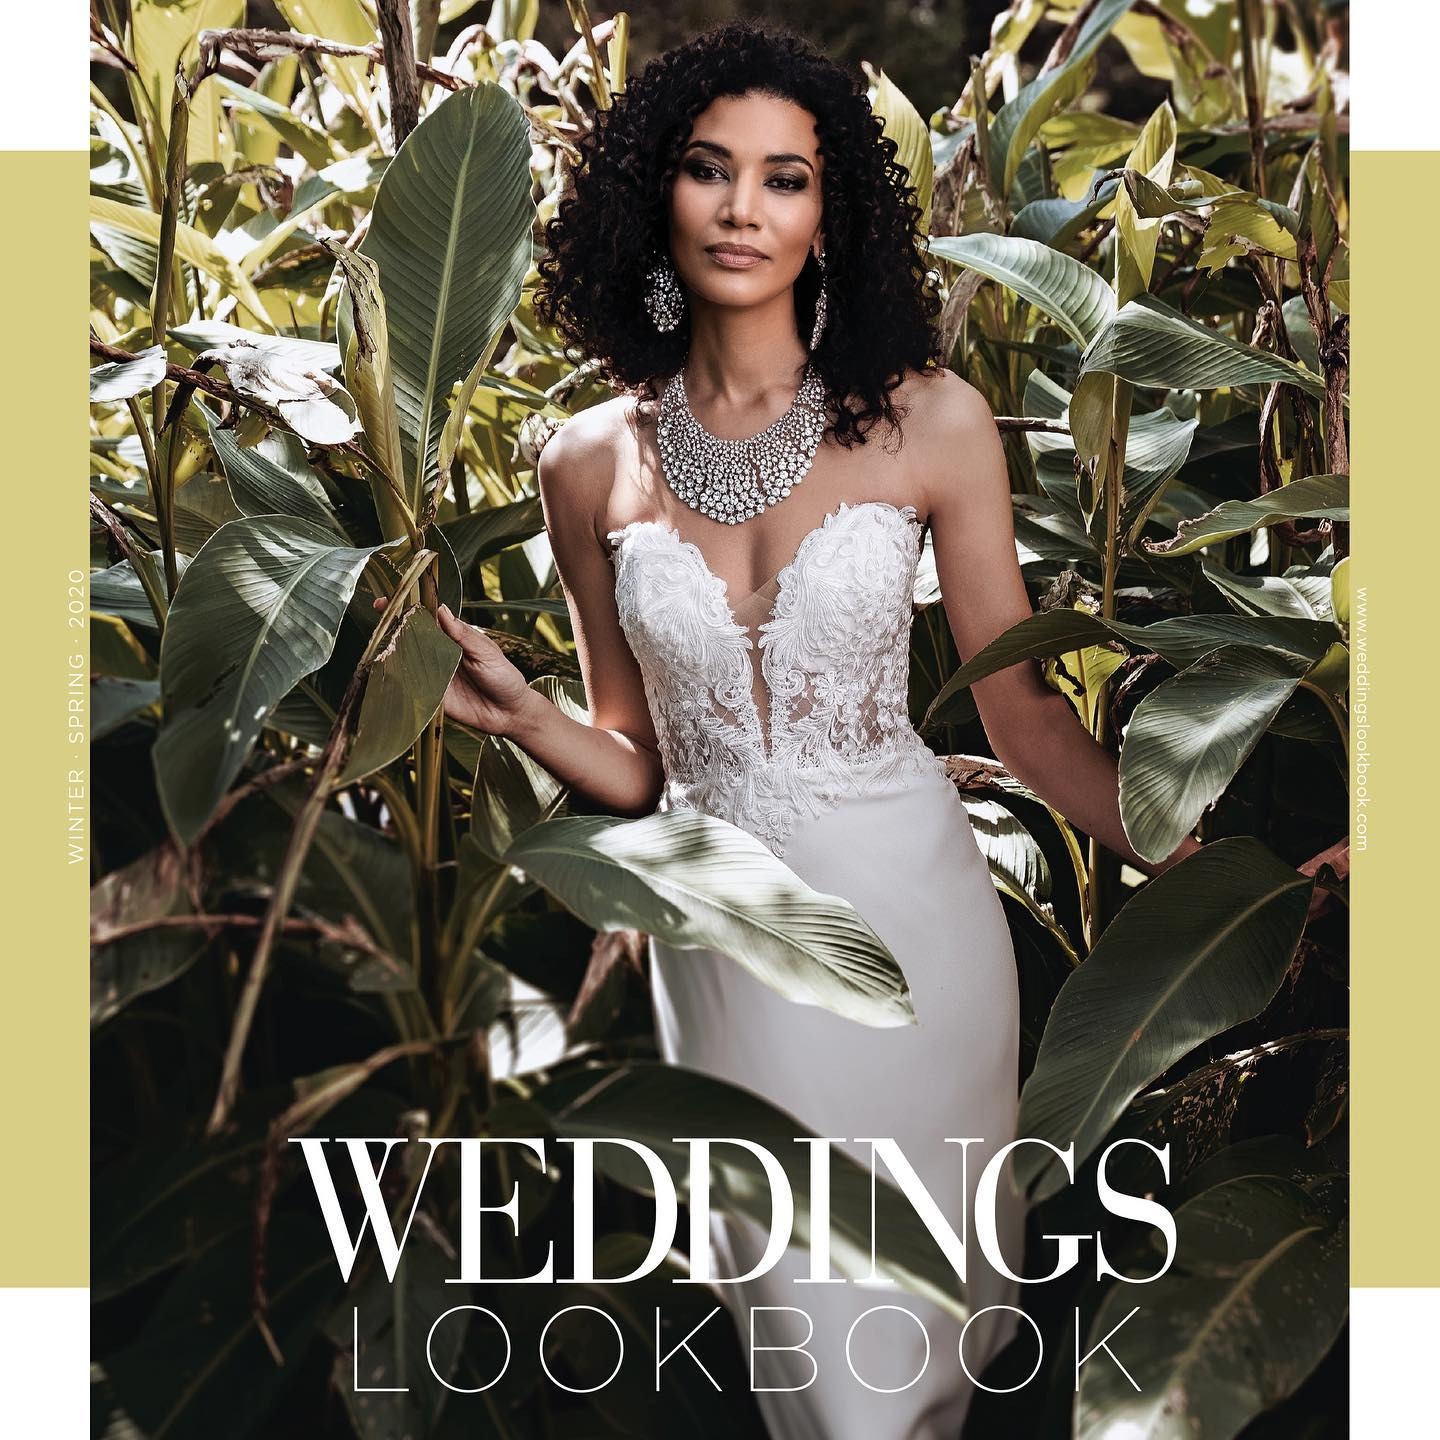 Weddings Lookbook